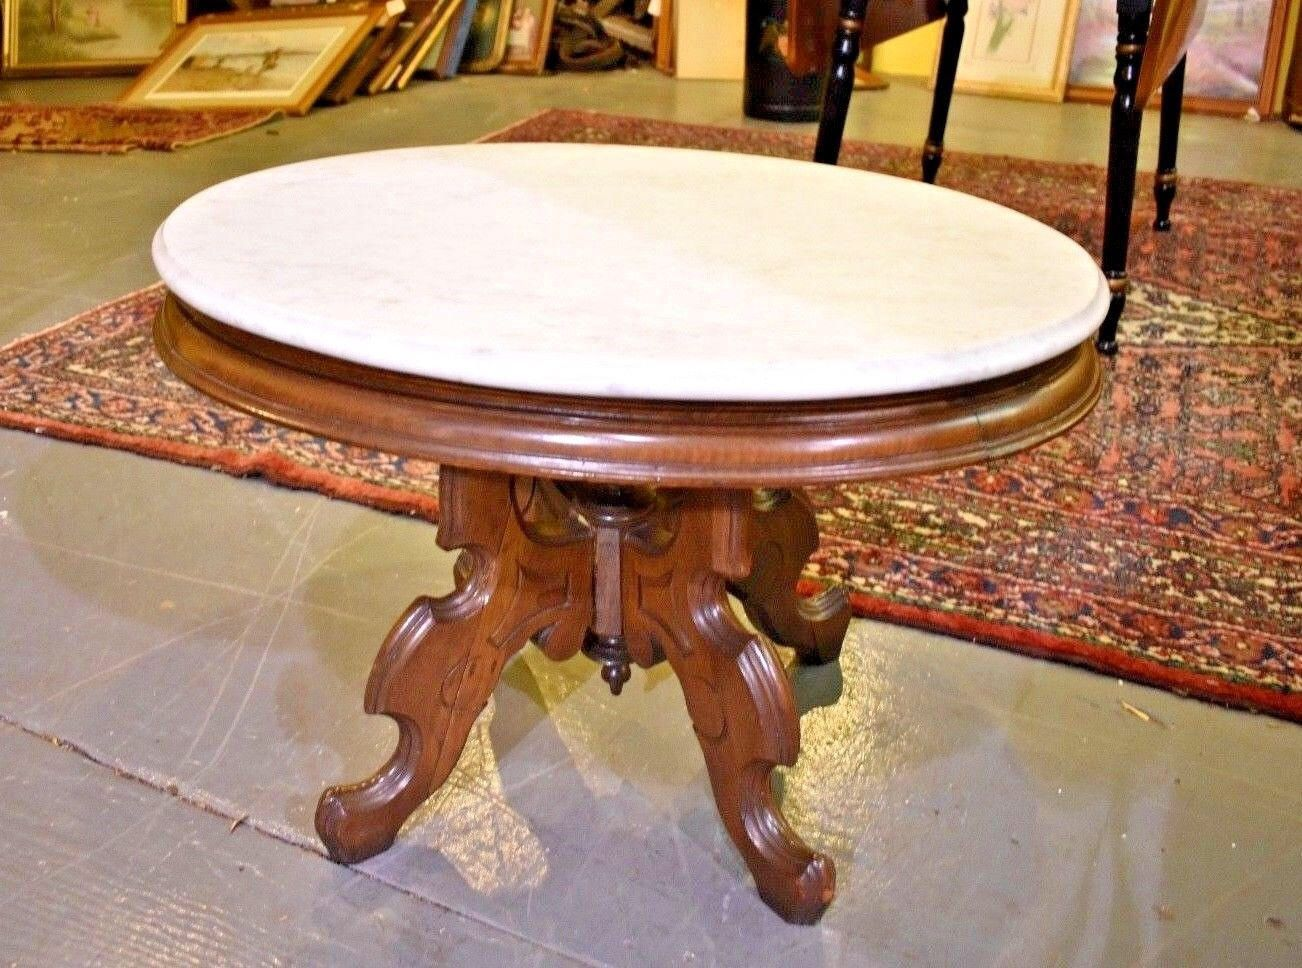 ... Style Antique Vintage Coffee Table by TheGreenSceneAntique on Etsy  https://www.etsy.com/listing/559420544/oval-marble-top-eastlake-style- antique - Oval Marble Top Eastlake Style Antique Vintage Coffee Table By